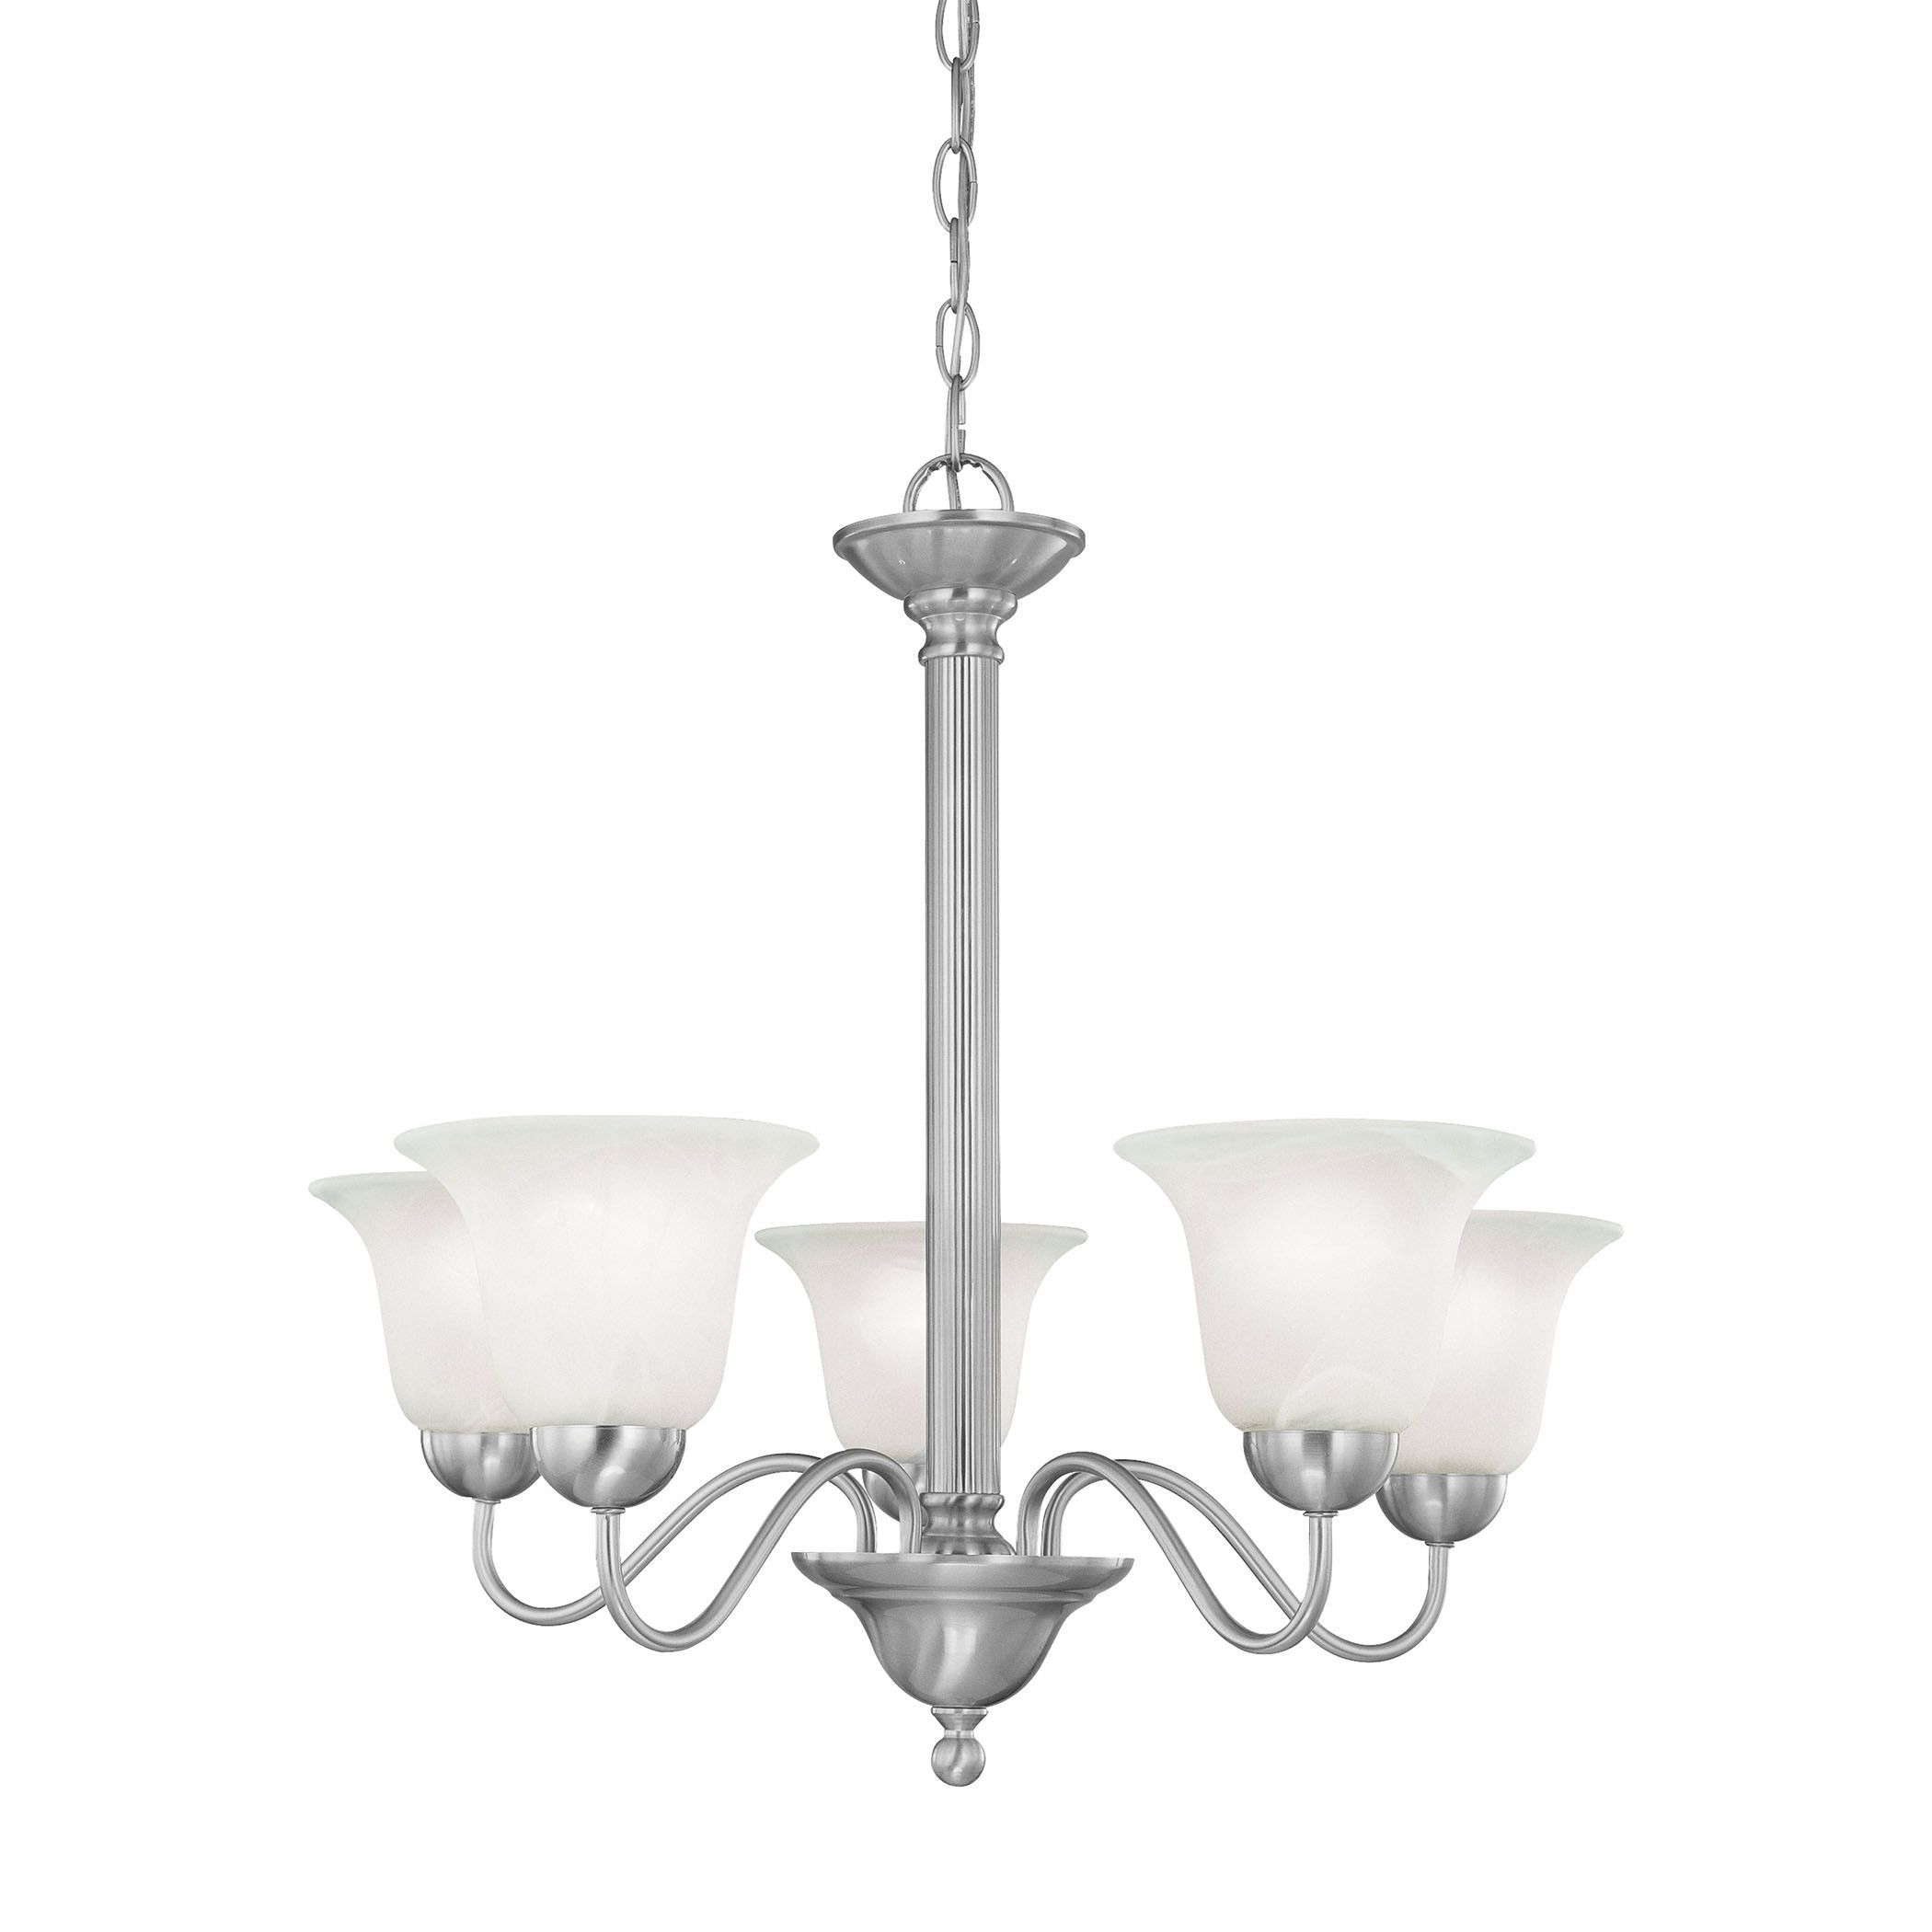 Thomas lighting sl881178 riva collection brushed nickel finish thomas lighting sl881178 riva collection brushed nickel finish traditional chandelier arubaitofo Image collections